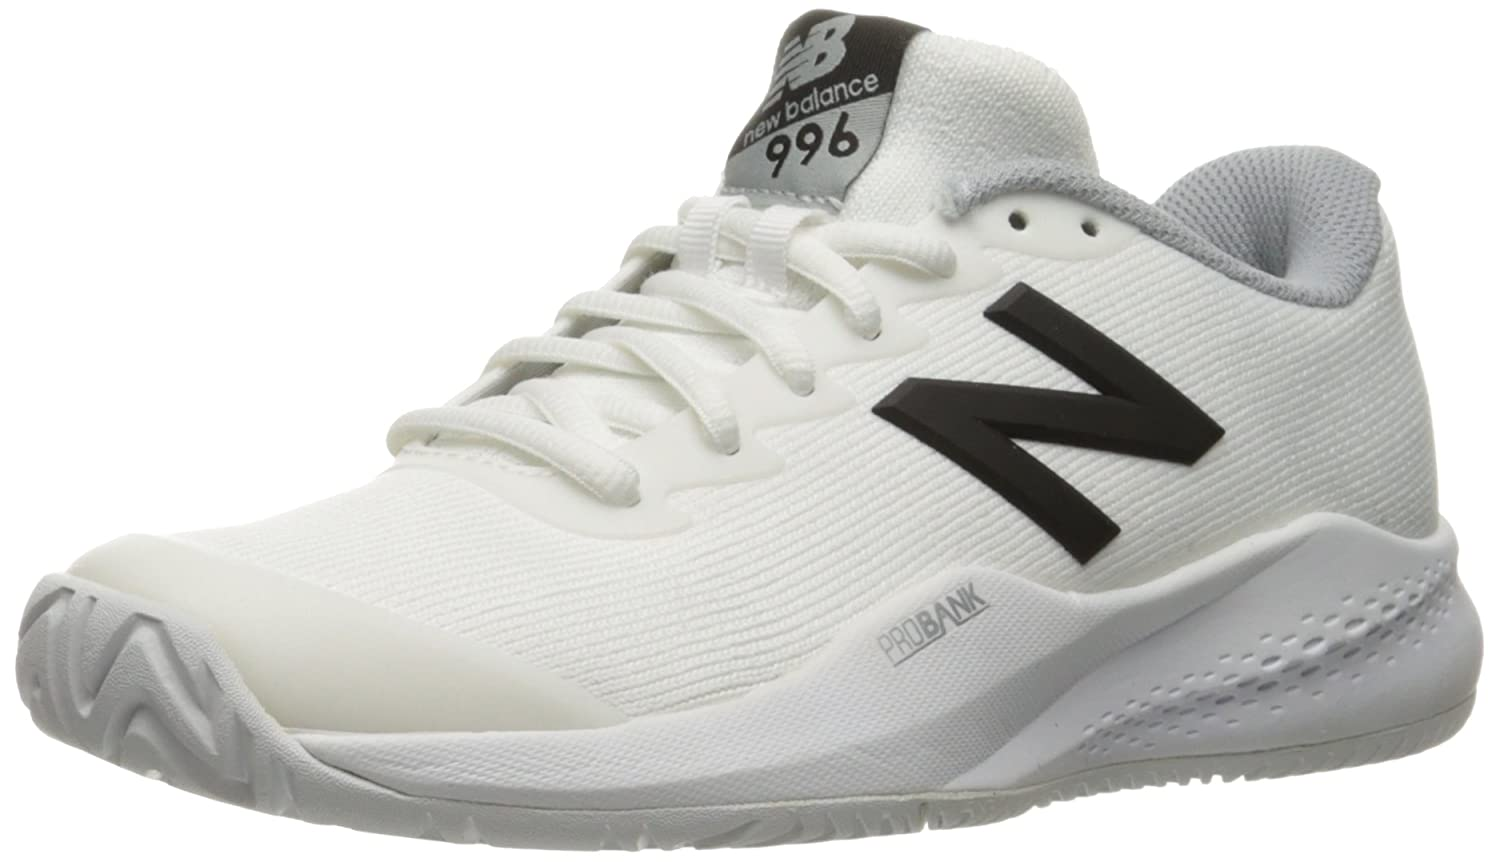 New Balance Women's 996v3 Hard Court Tennis Shoe B01FSIKM88 10.5 B(M) US|White/Black